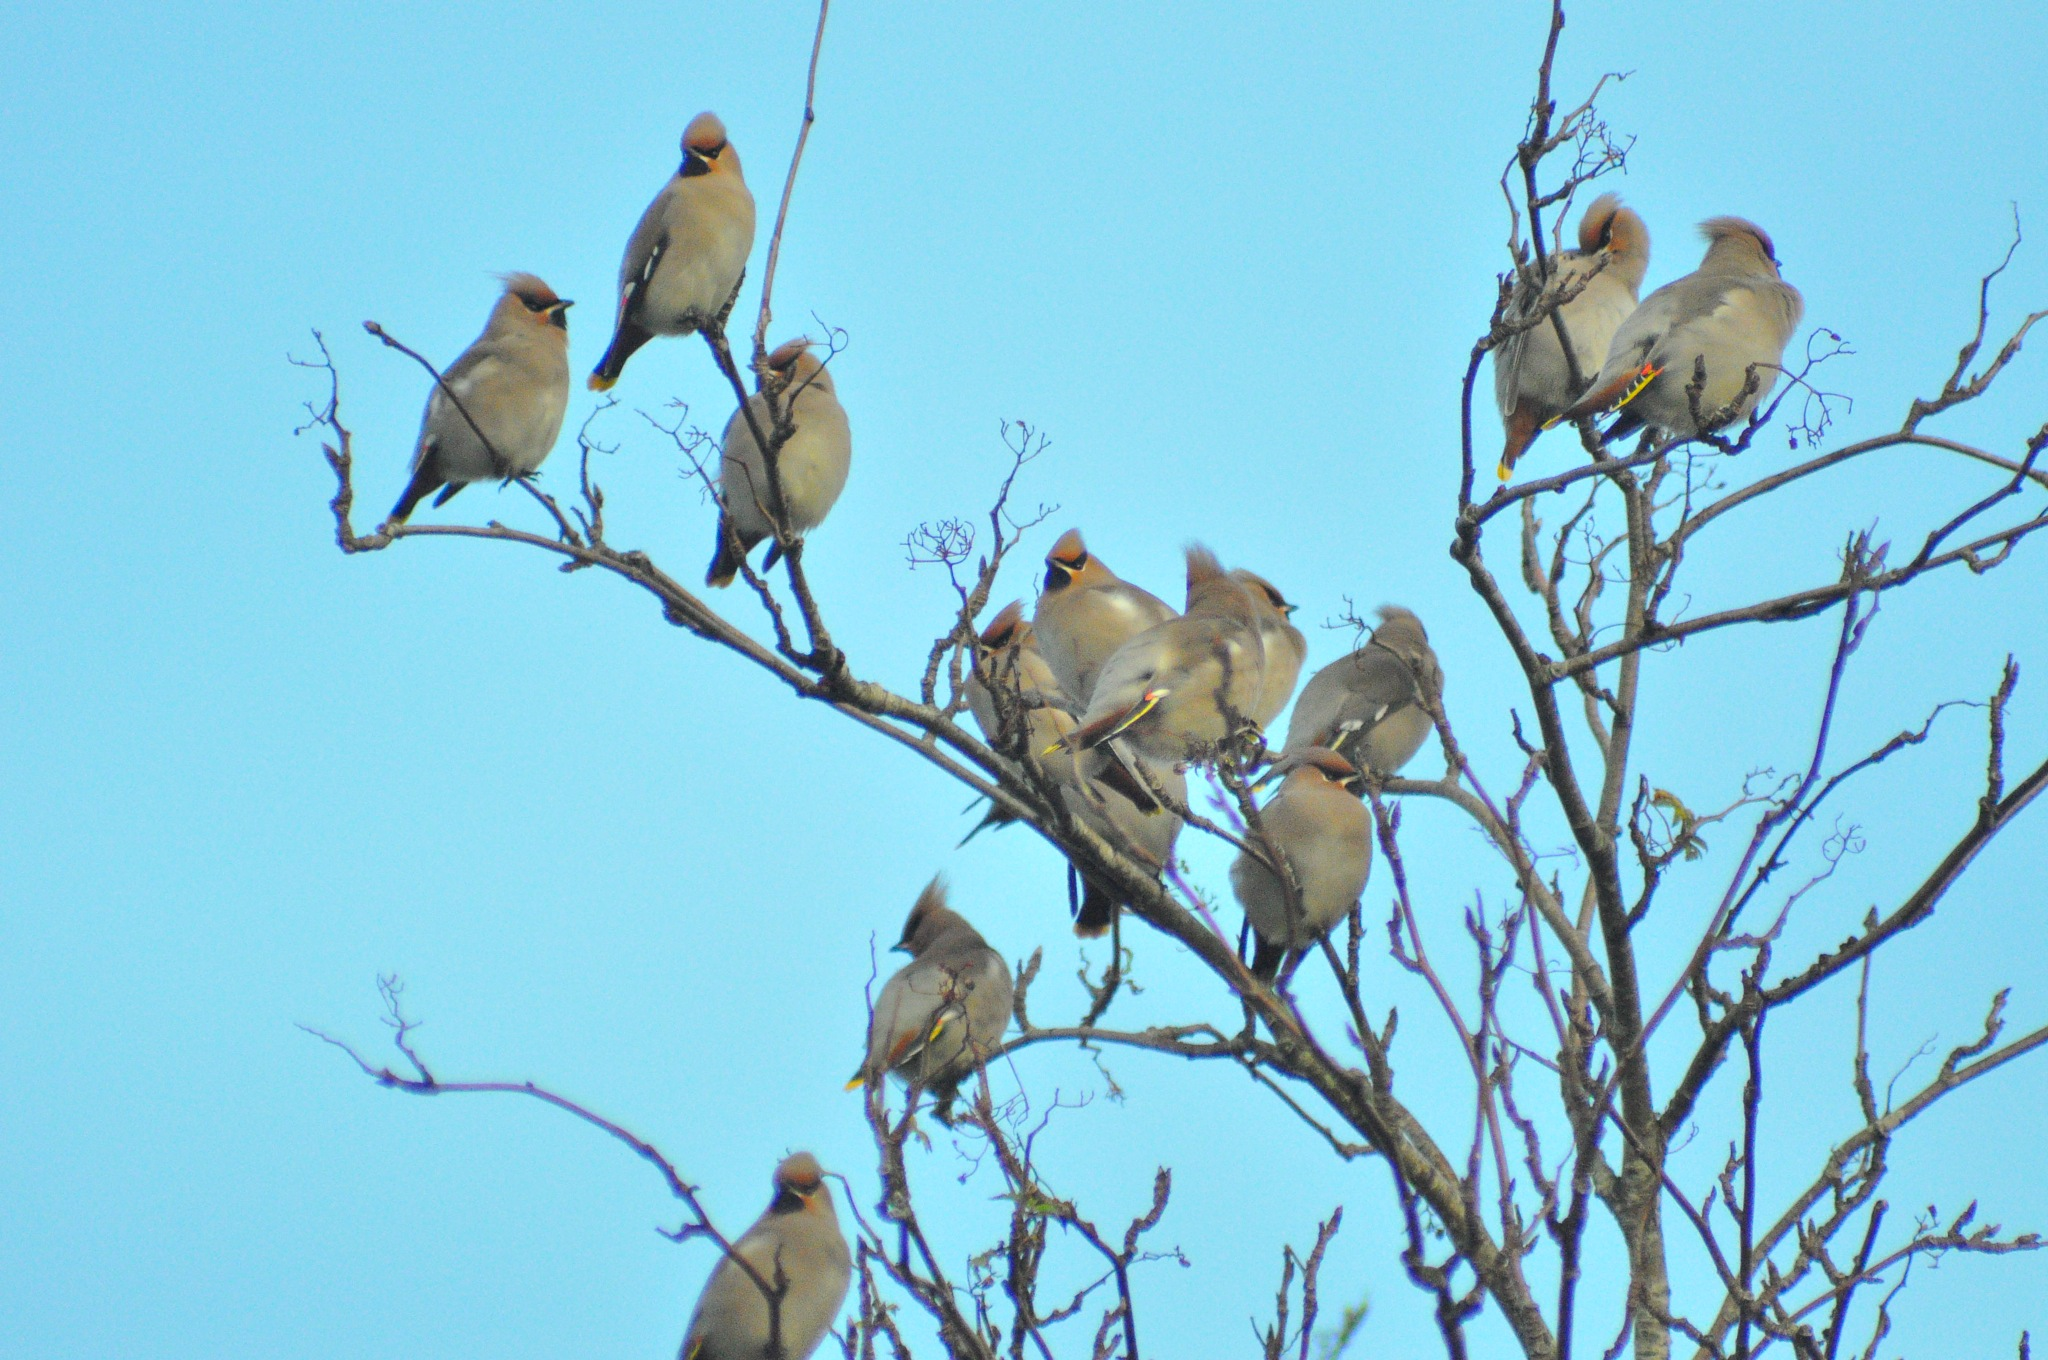 Bohemian waxwings crowd by Dag Olav Øverland